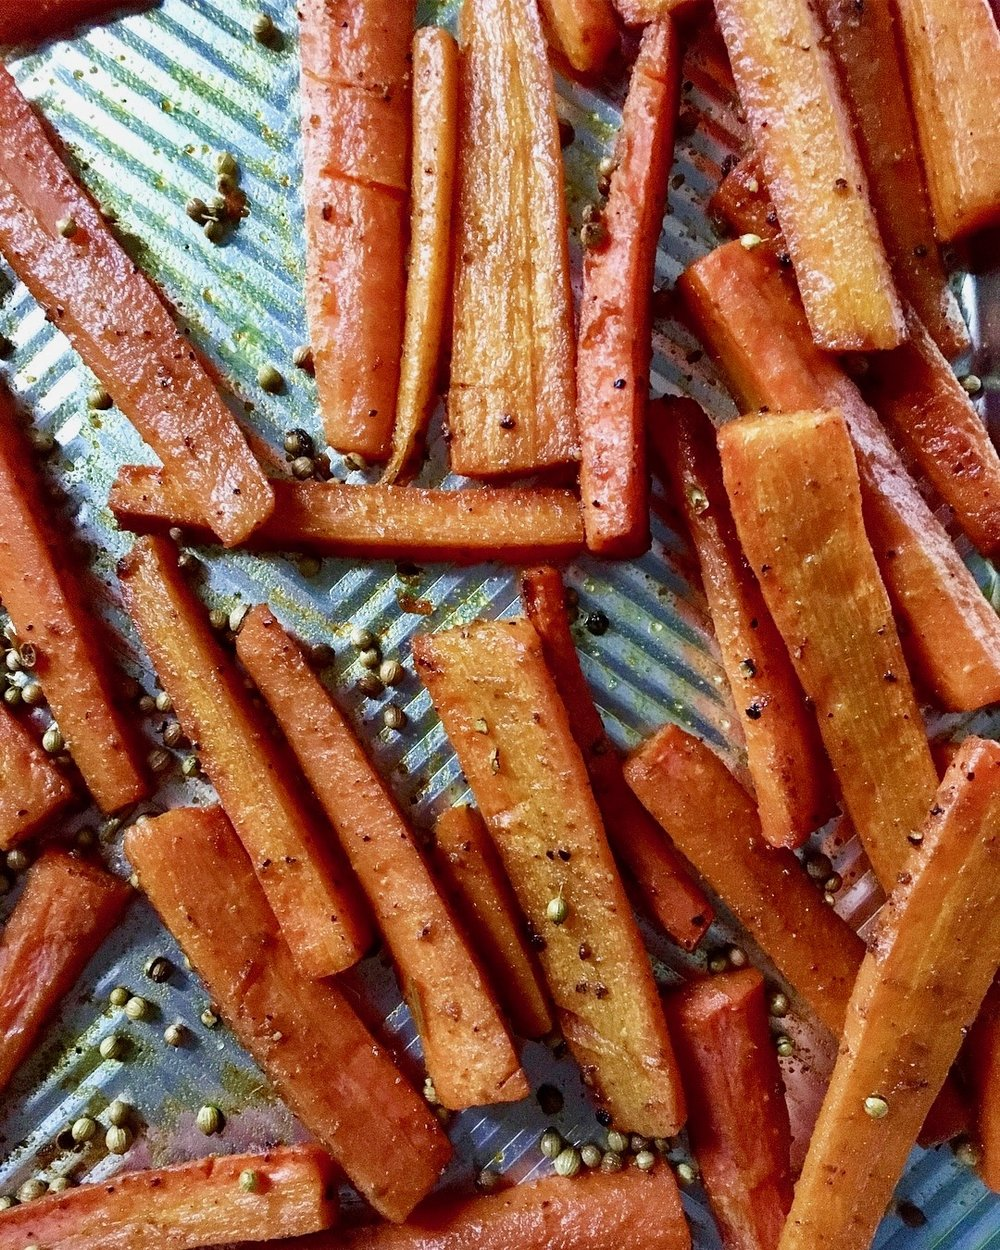 Coat your carrots in olive oil, whole coriander seeds, ground cumin, turmeric, smoked paprika and black pepper and roast until super soft, caramelized and deep brown. Notice we DO NOT salt prior to our roast as the veggies then release water and, I find, do not brown to their maximum potential.